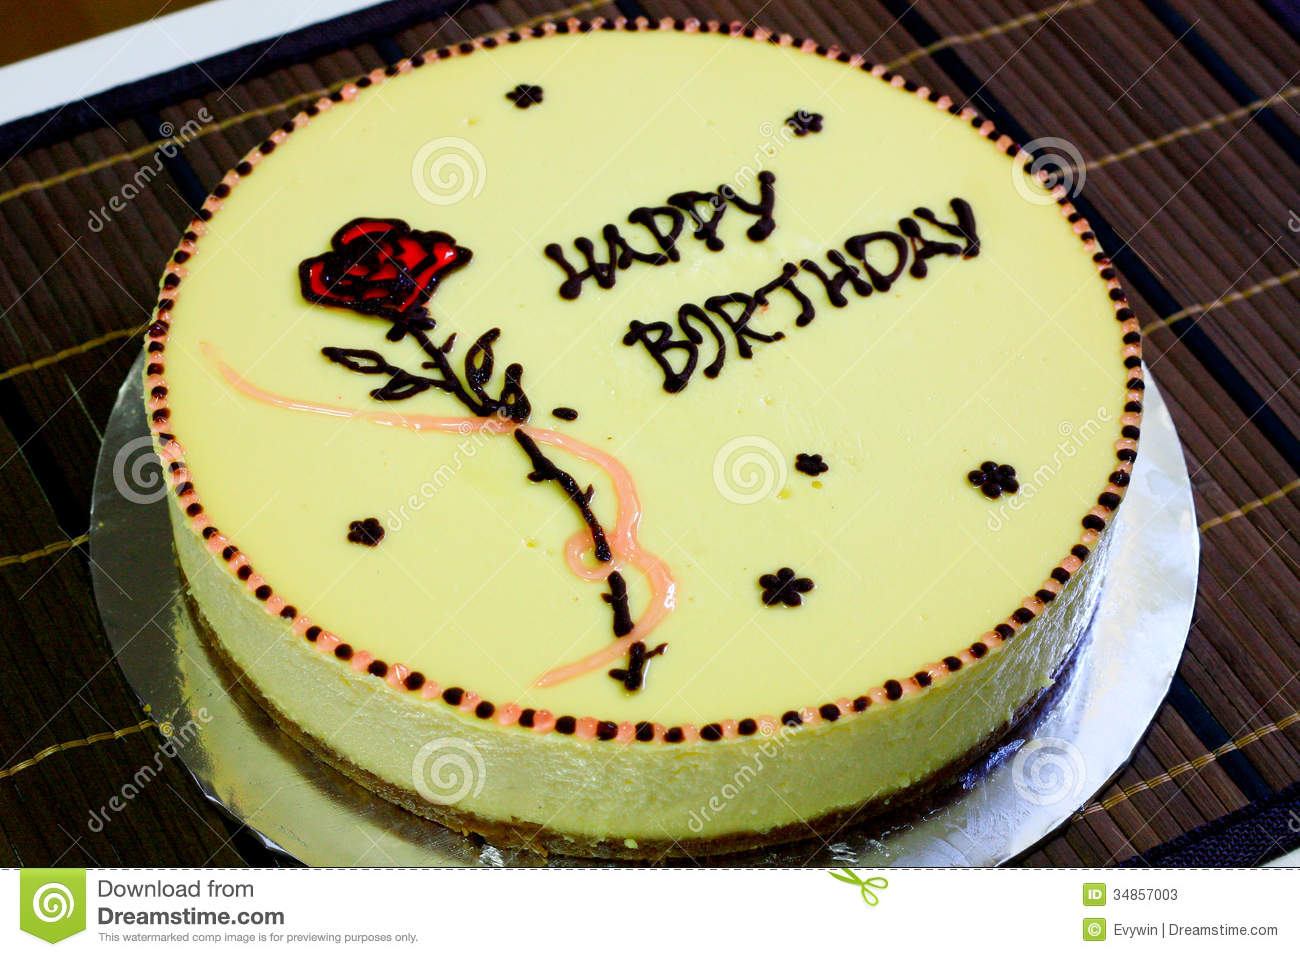 cheese cake rose decoration as birthday 34857003 birthday cake bunting decoration 2 on birthday cake bunting decoration